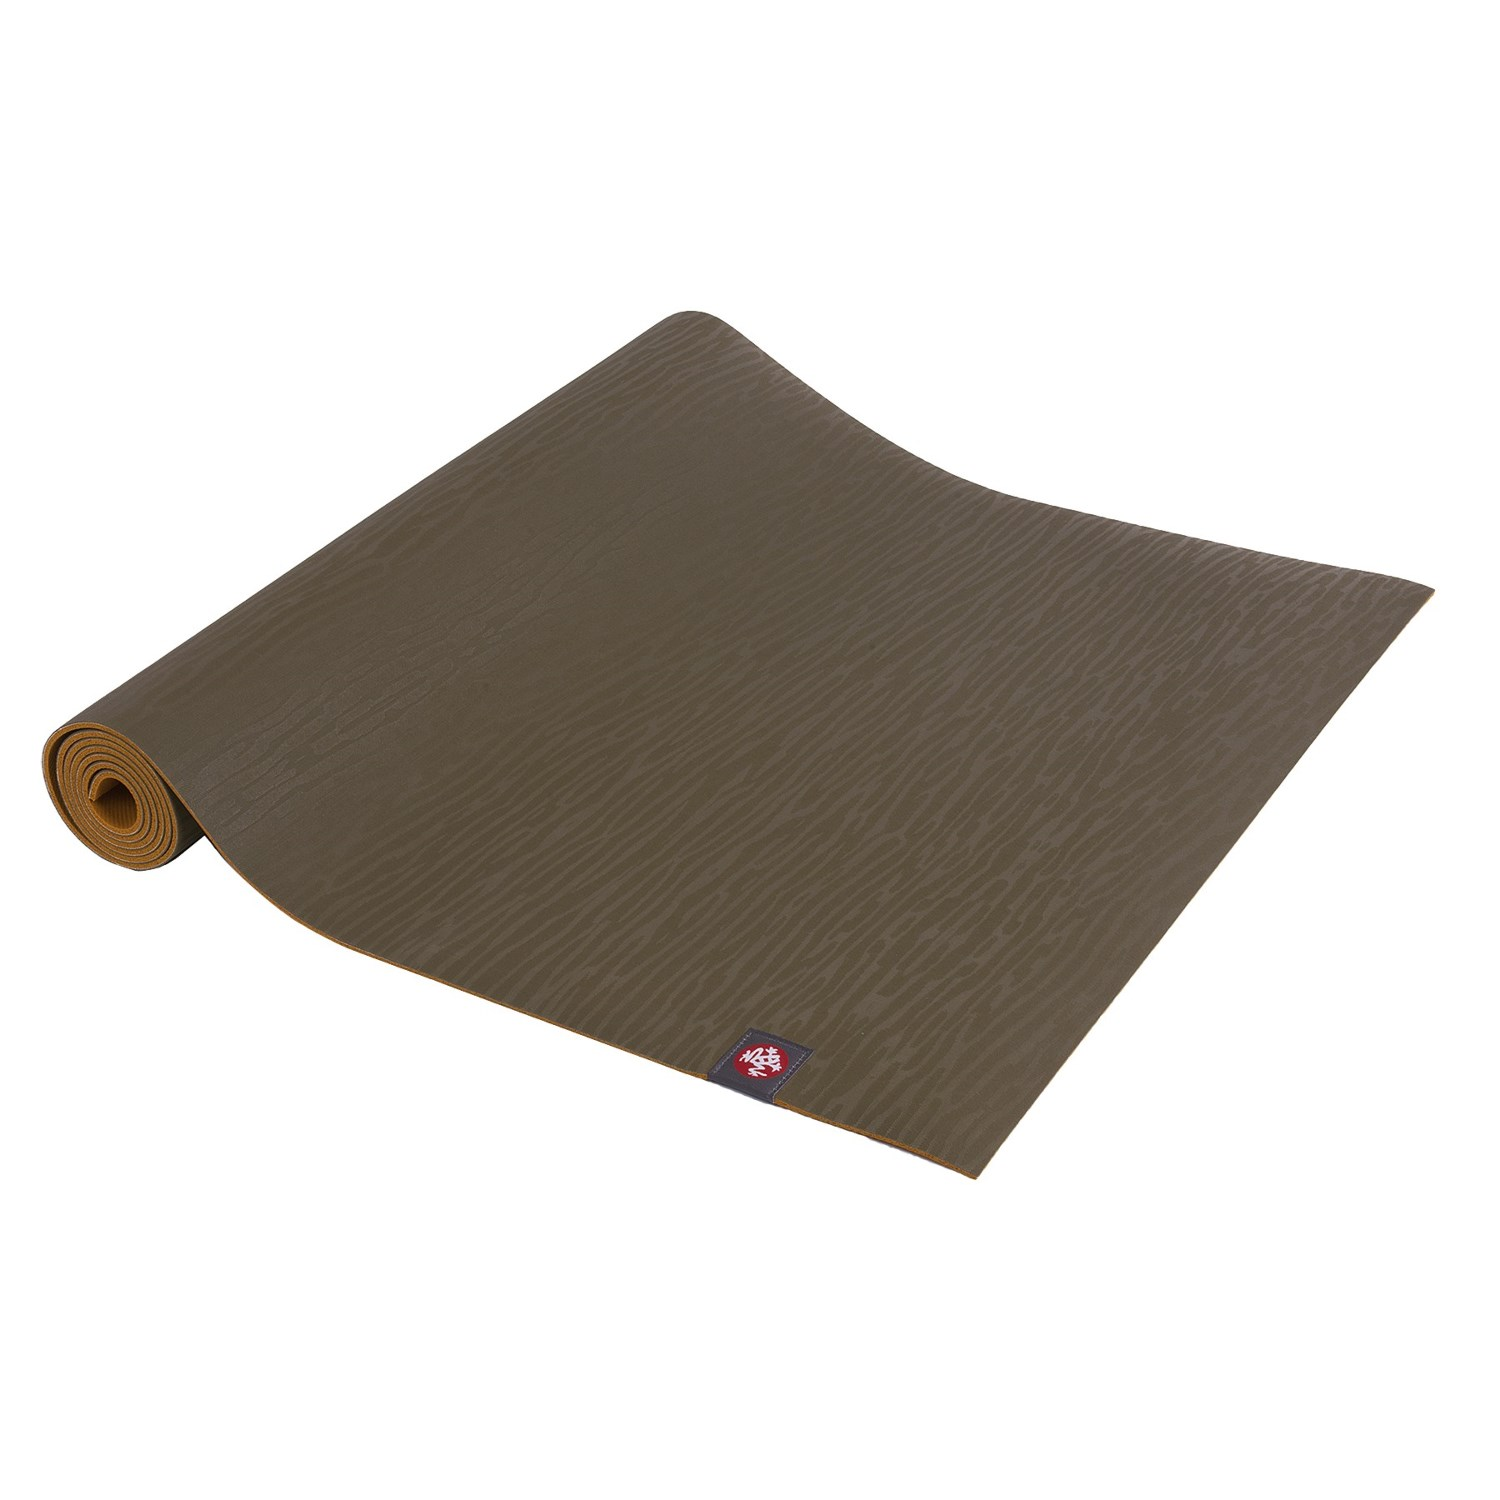 4 mat review system 1 3/4 shock mats are typically in stock and ready to ship orders ship within 10-13 business days of the order being placed please call for lead times for orders with more then 10 gym mats.